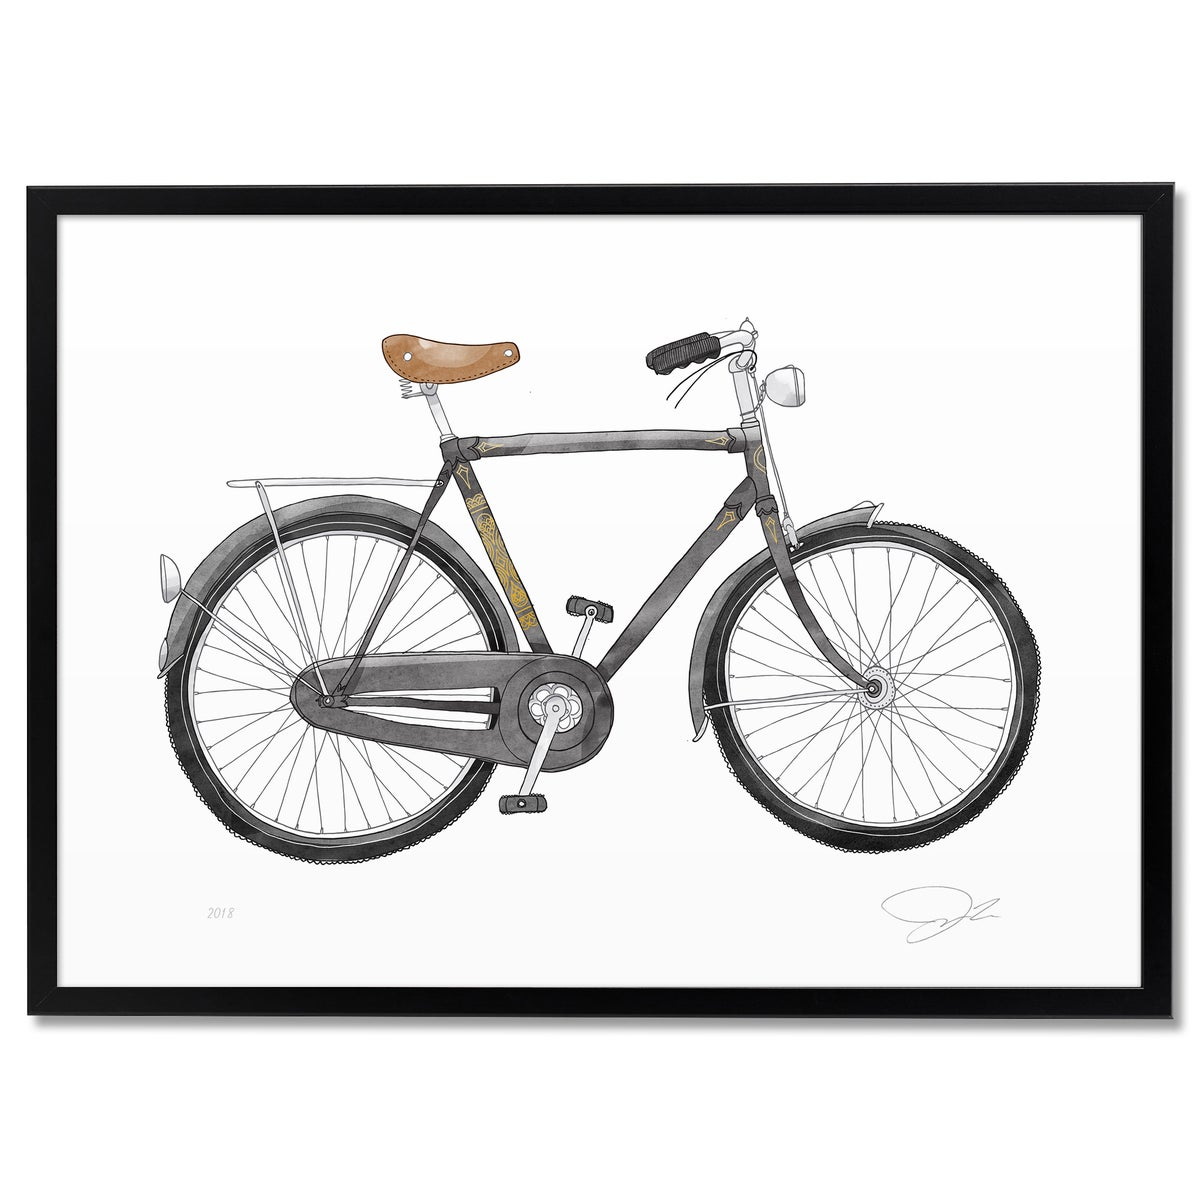 Image of Print: Bike